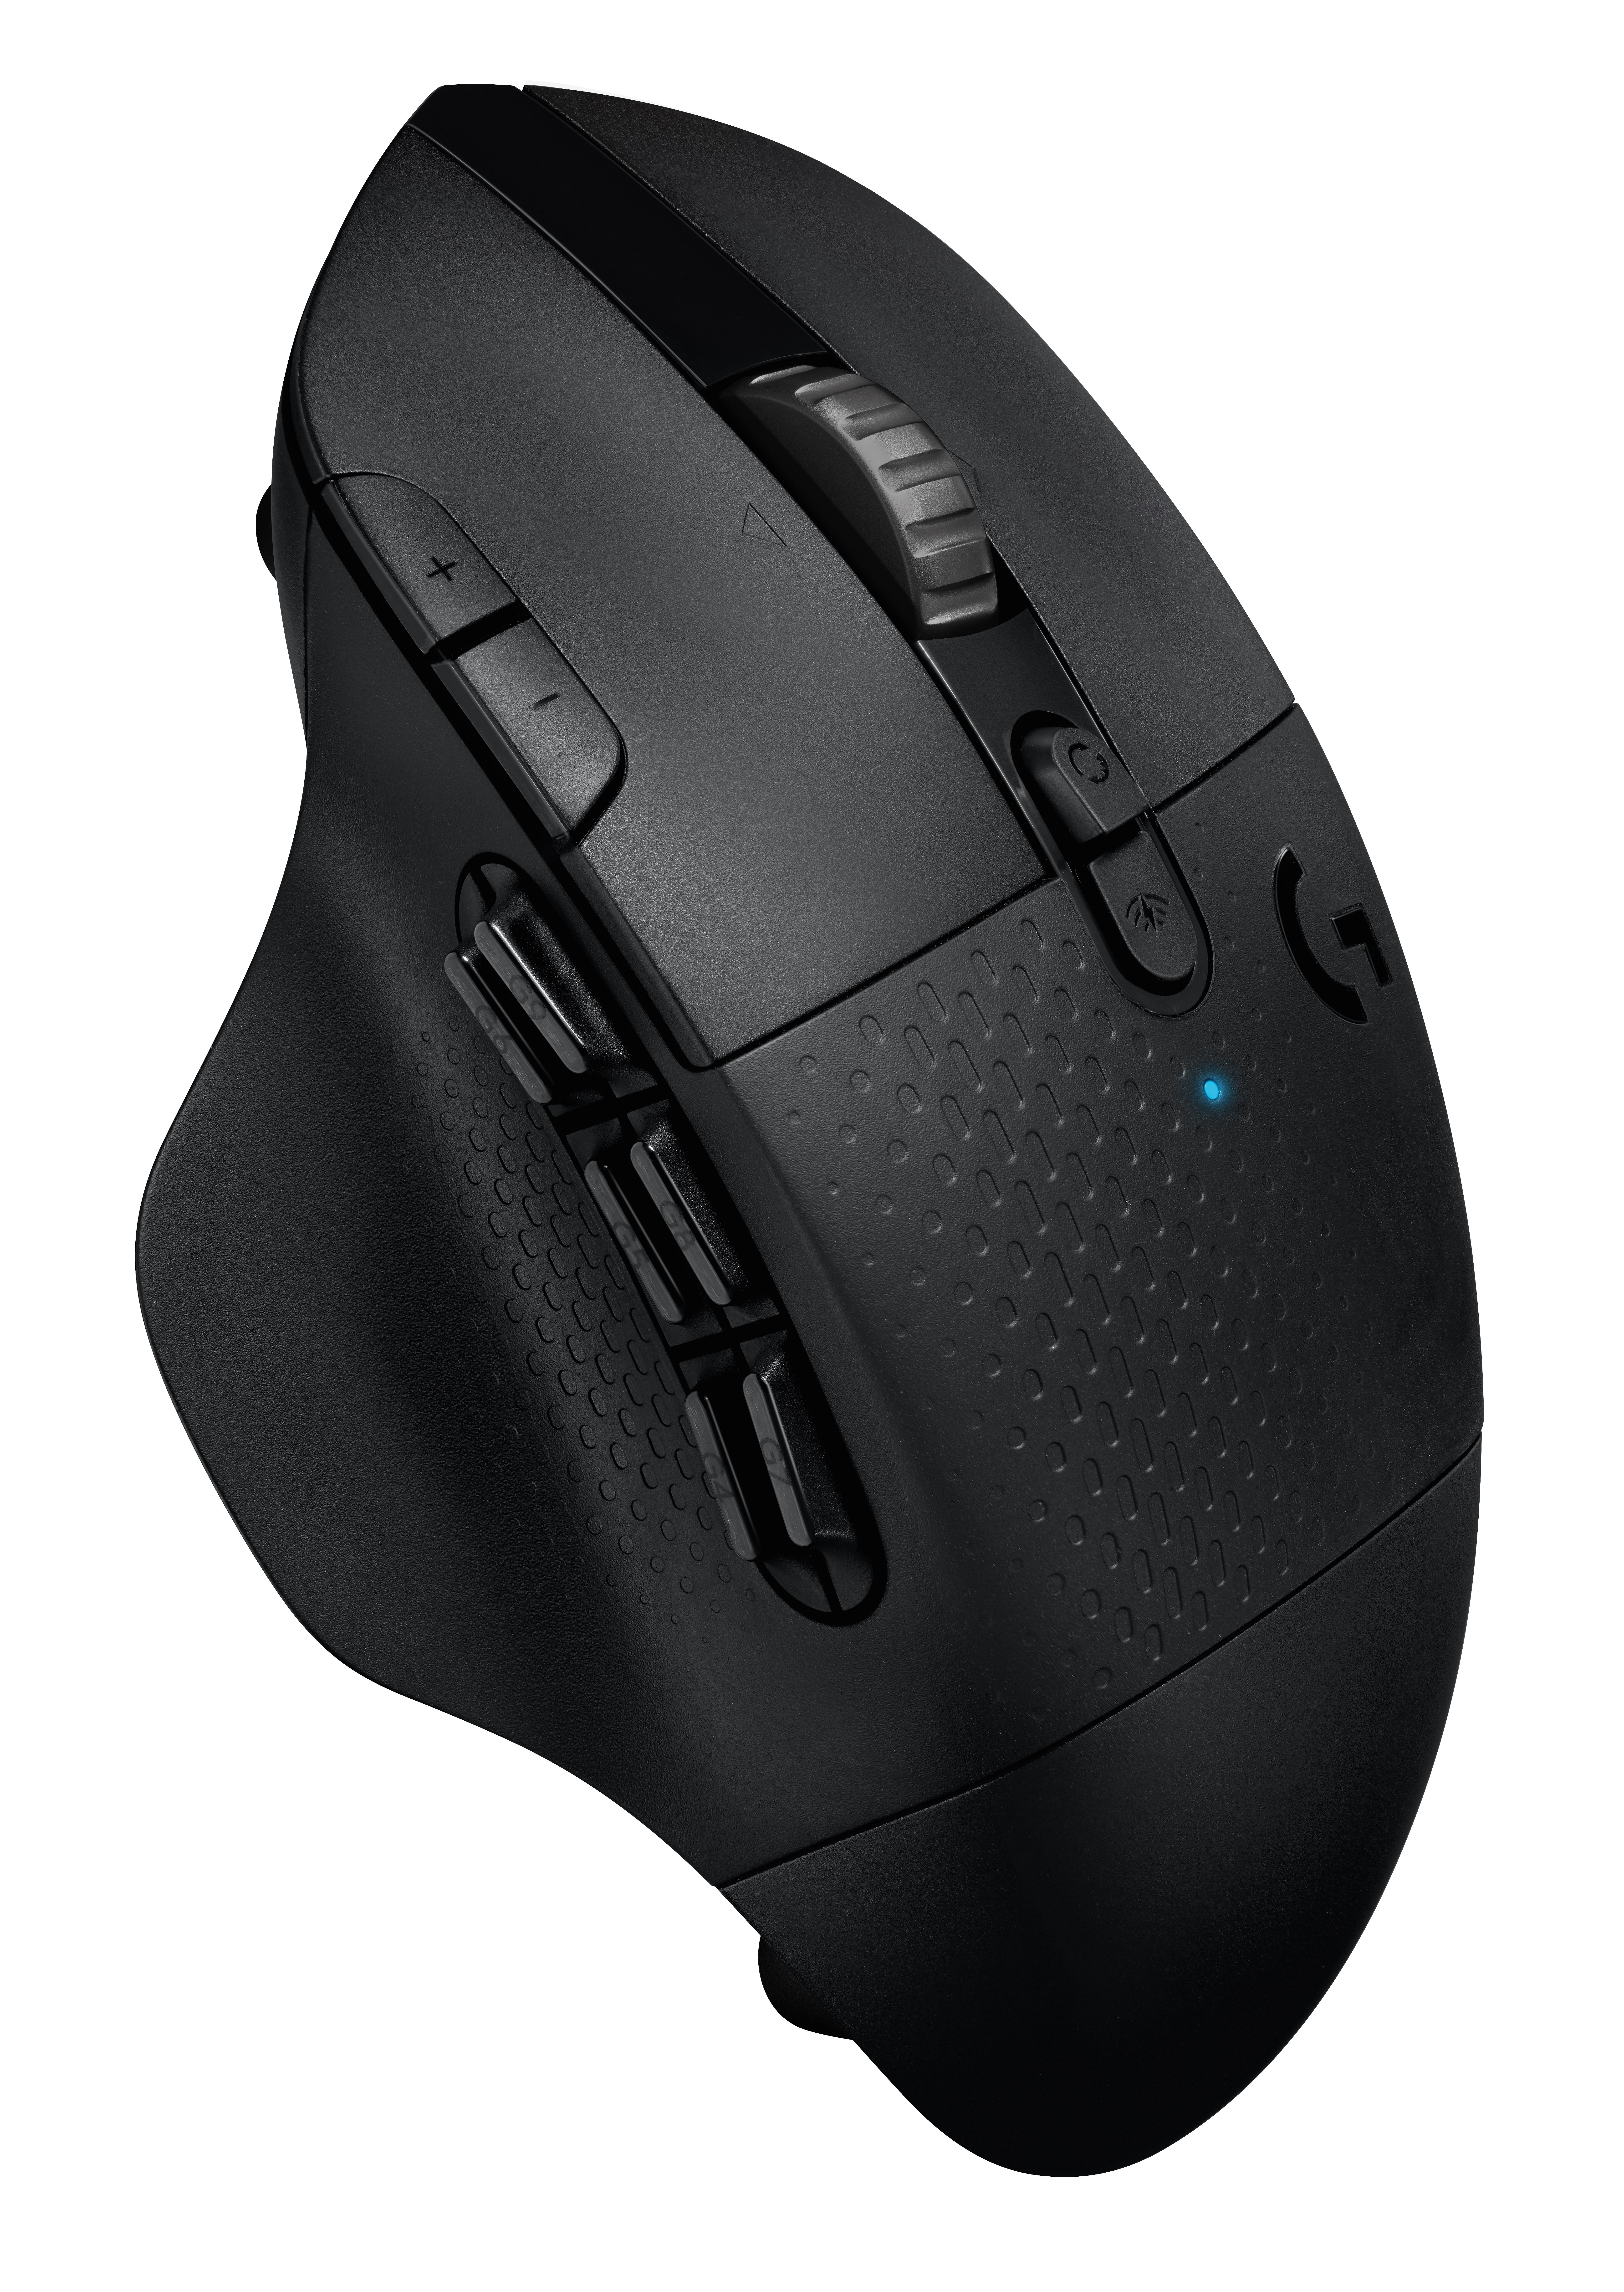 Logitech G604 LIGHTSPEED Wireless Gaming Mouse - BLACK